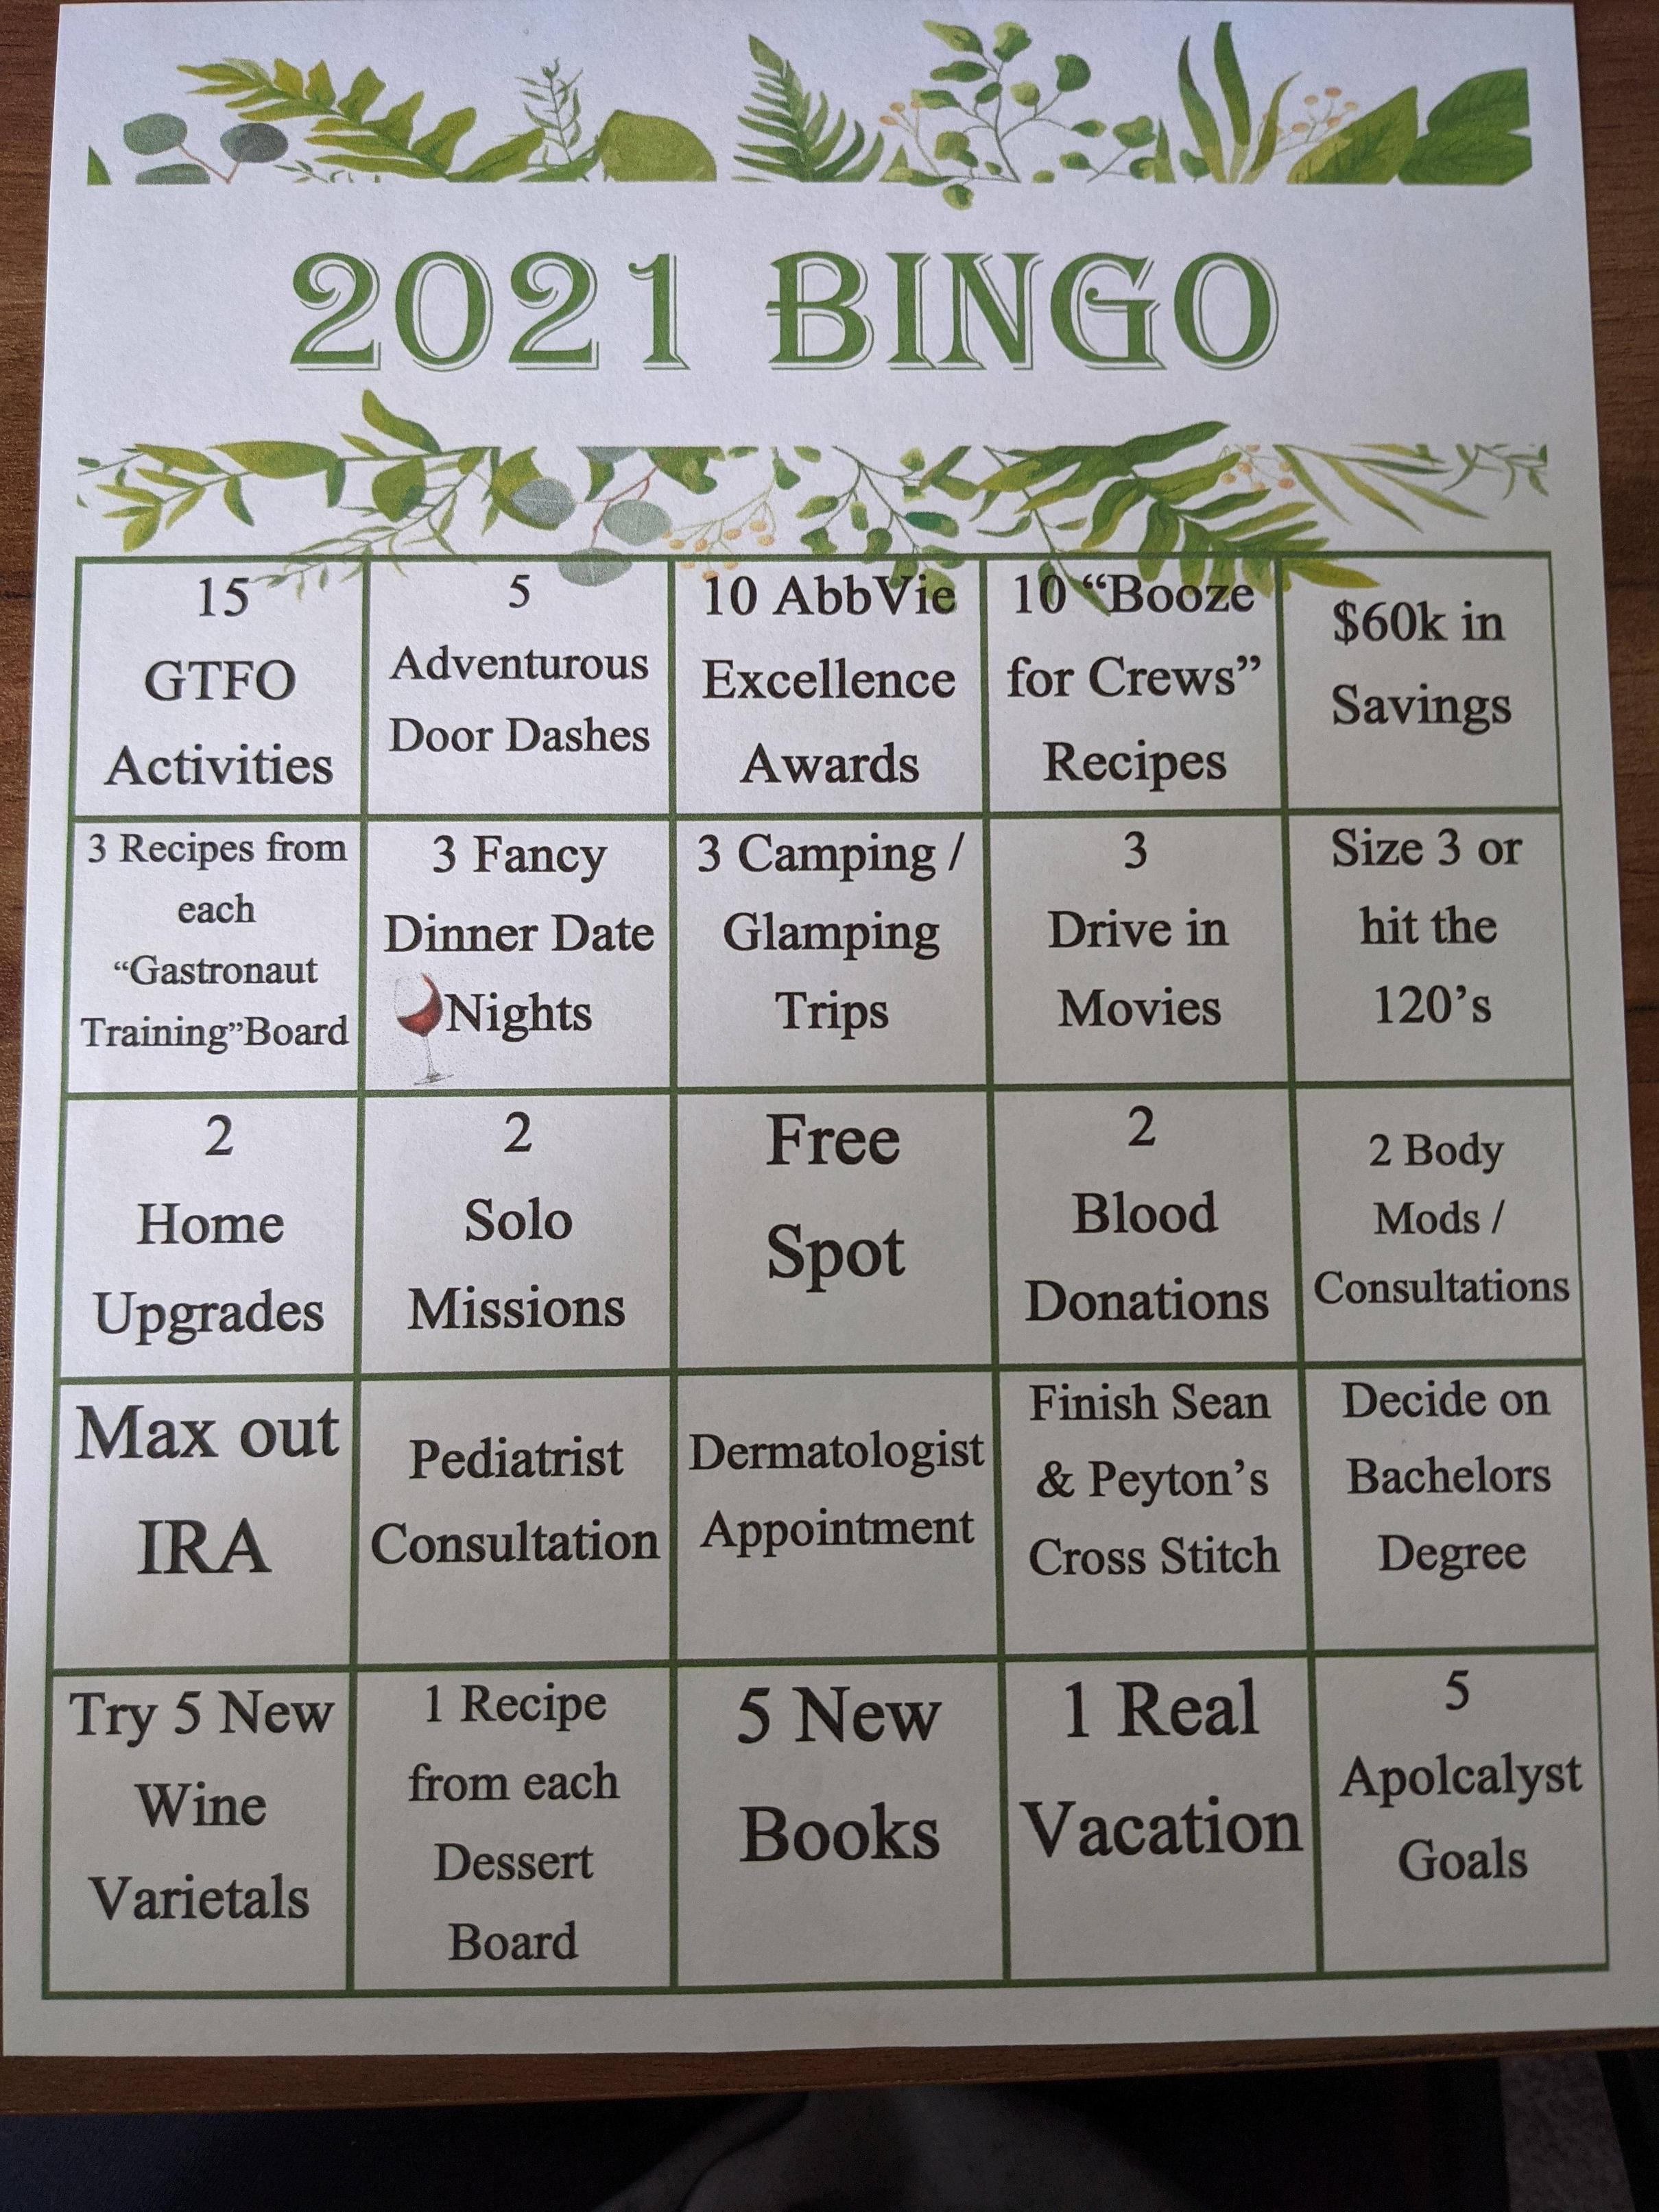 "[Image] For the last 6 years I've made myself a ""new years resolution"" bingo card to help keep me on track with my goals and desires. This year I invite you all to join me! It may seem daunting at first, but with every square you fill in you will be reminded of your strength and accomplishments."